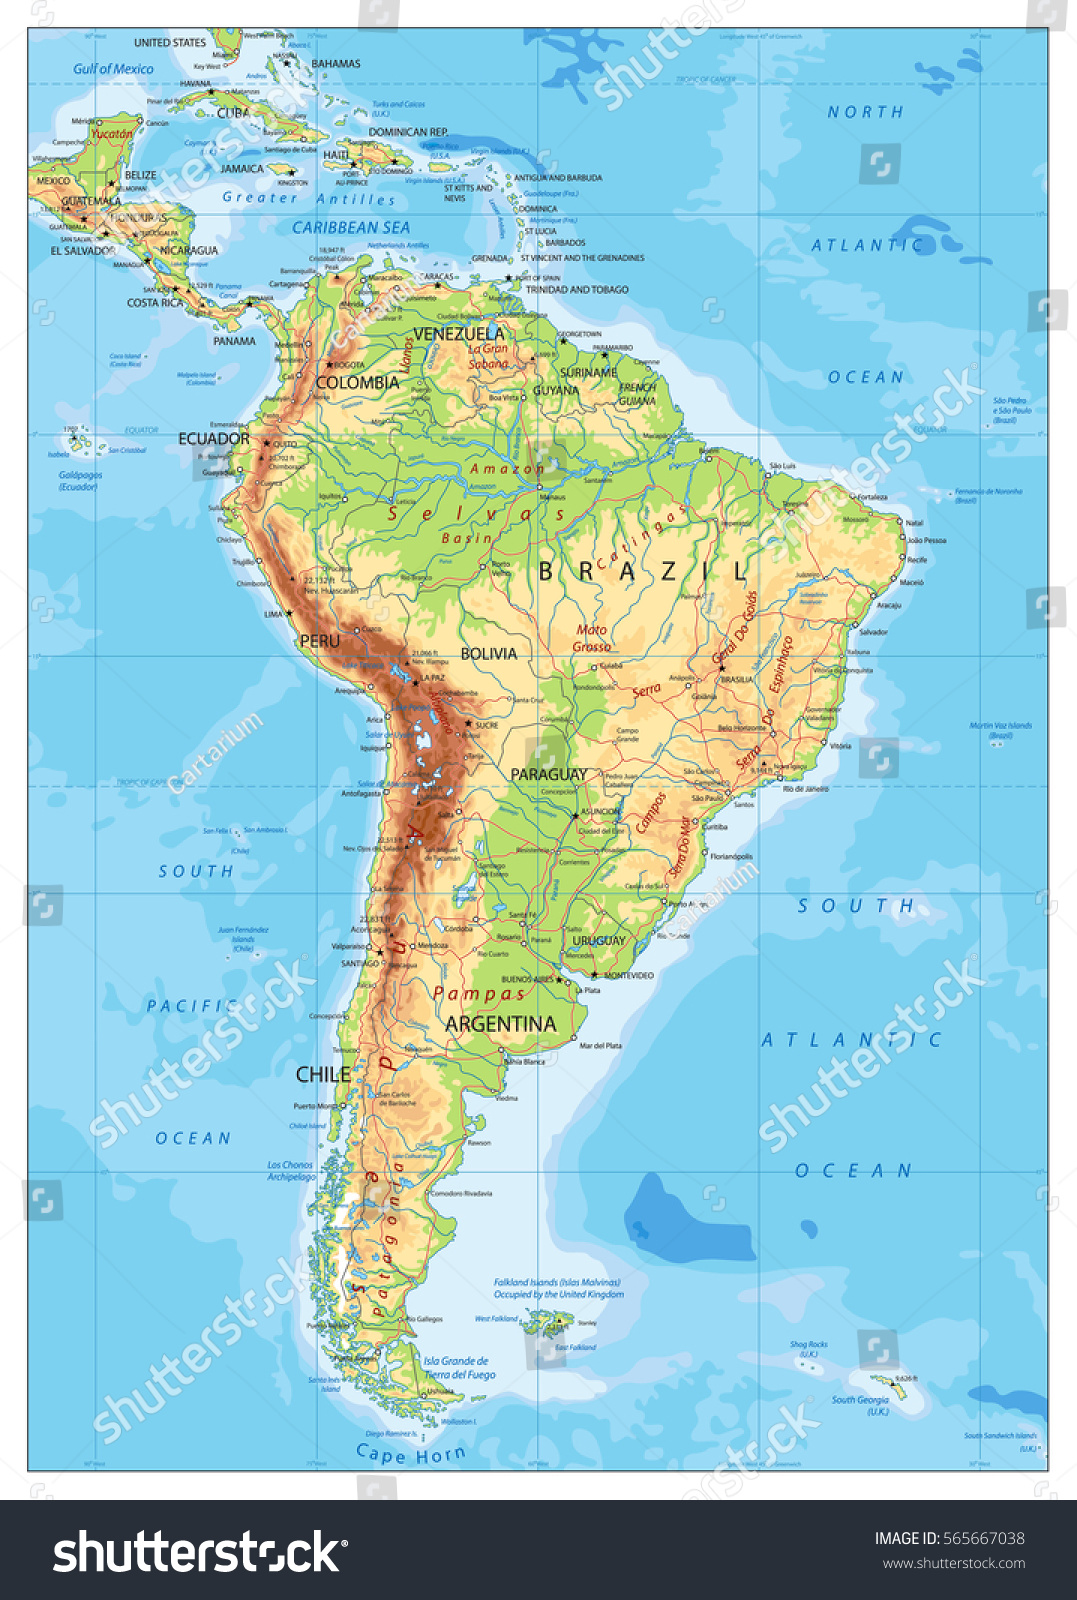 South america detailed physical map global stock vector 565667038 south america detailed physical map with global relief roads lakes and rivers highly gumiabroncs Choice Image